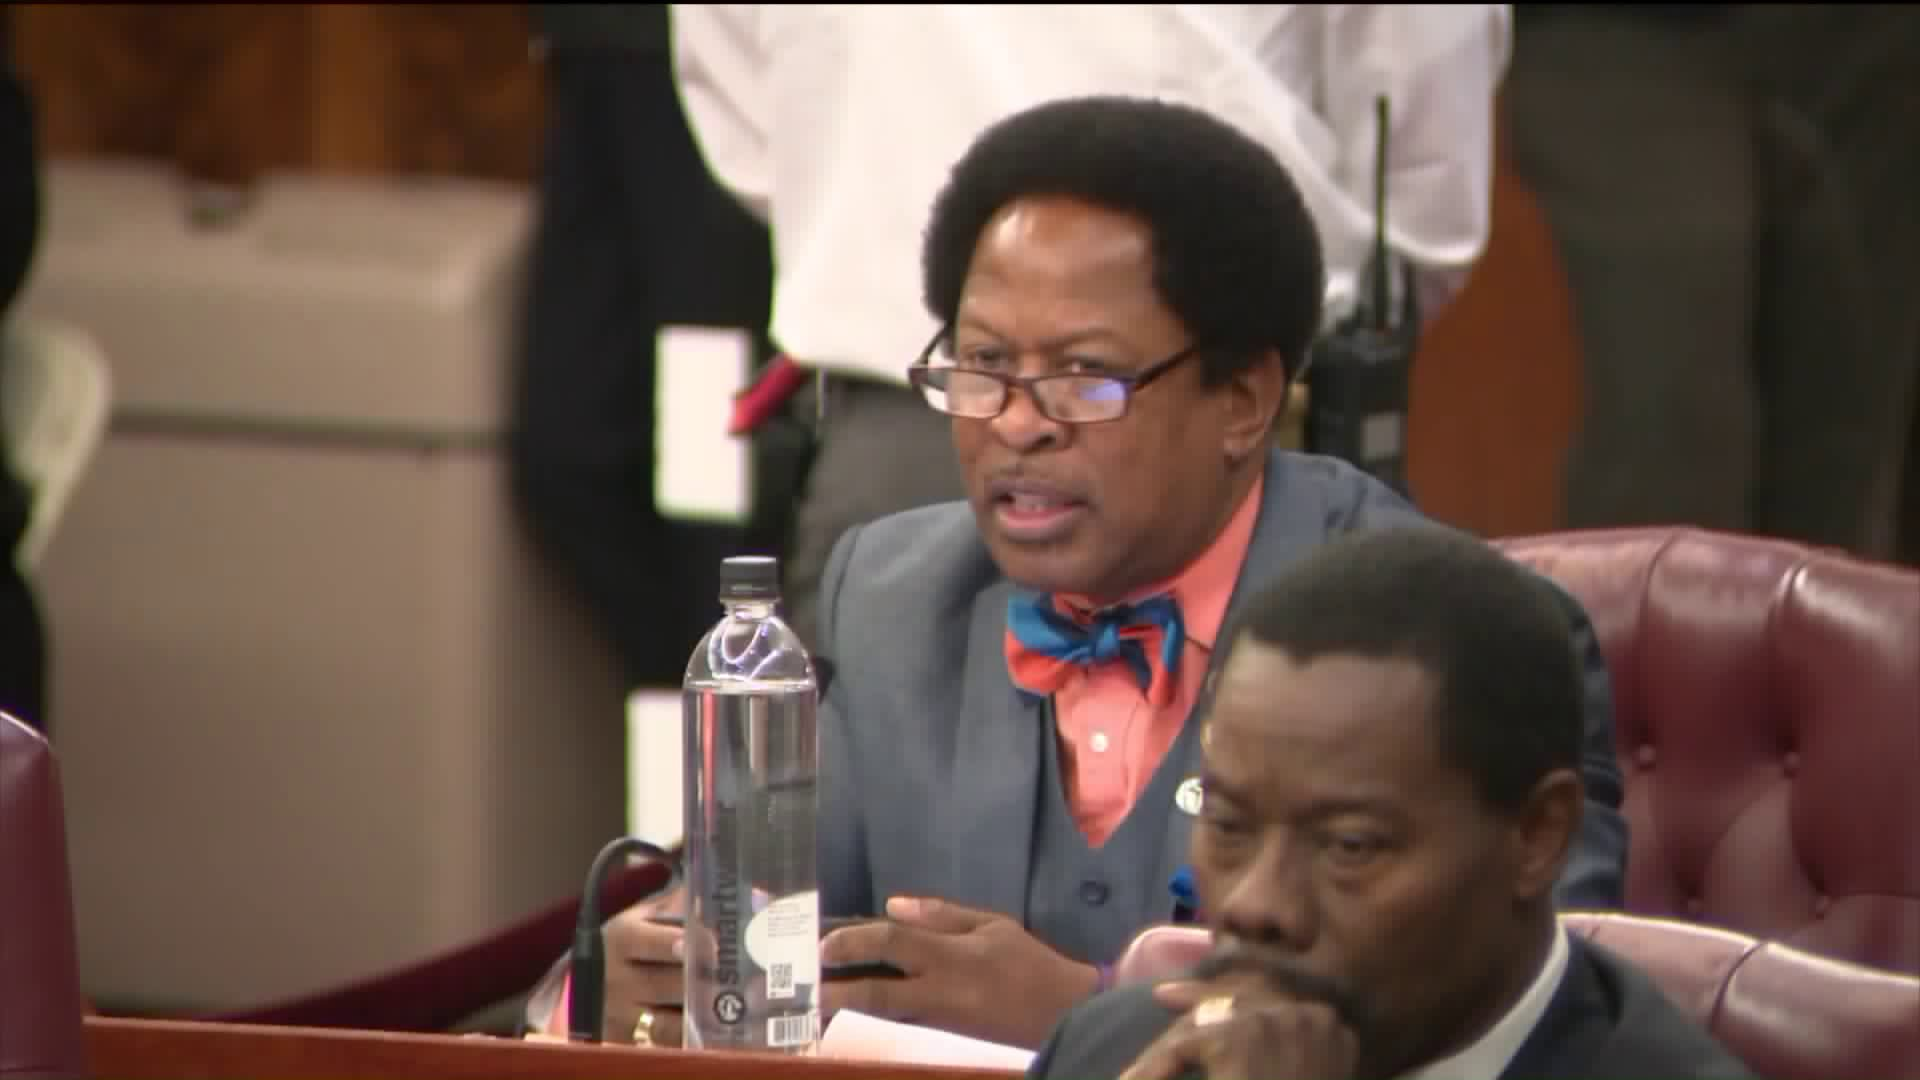 Andy King keeps City Council seat but gets 1-month suspension over ethicsviolations